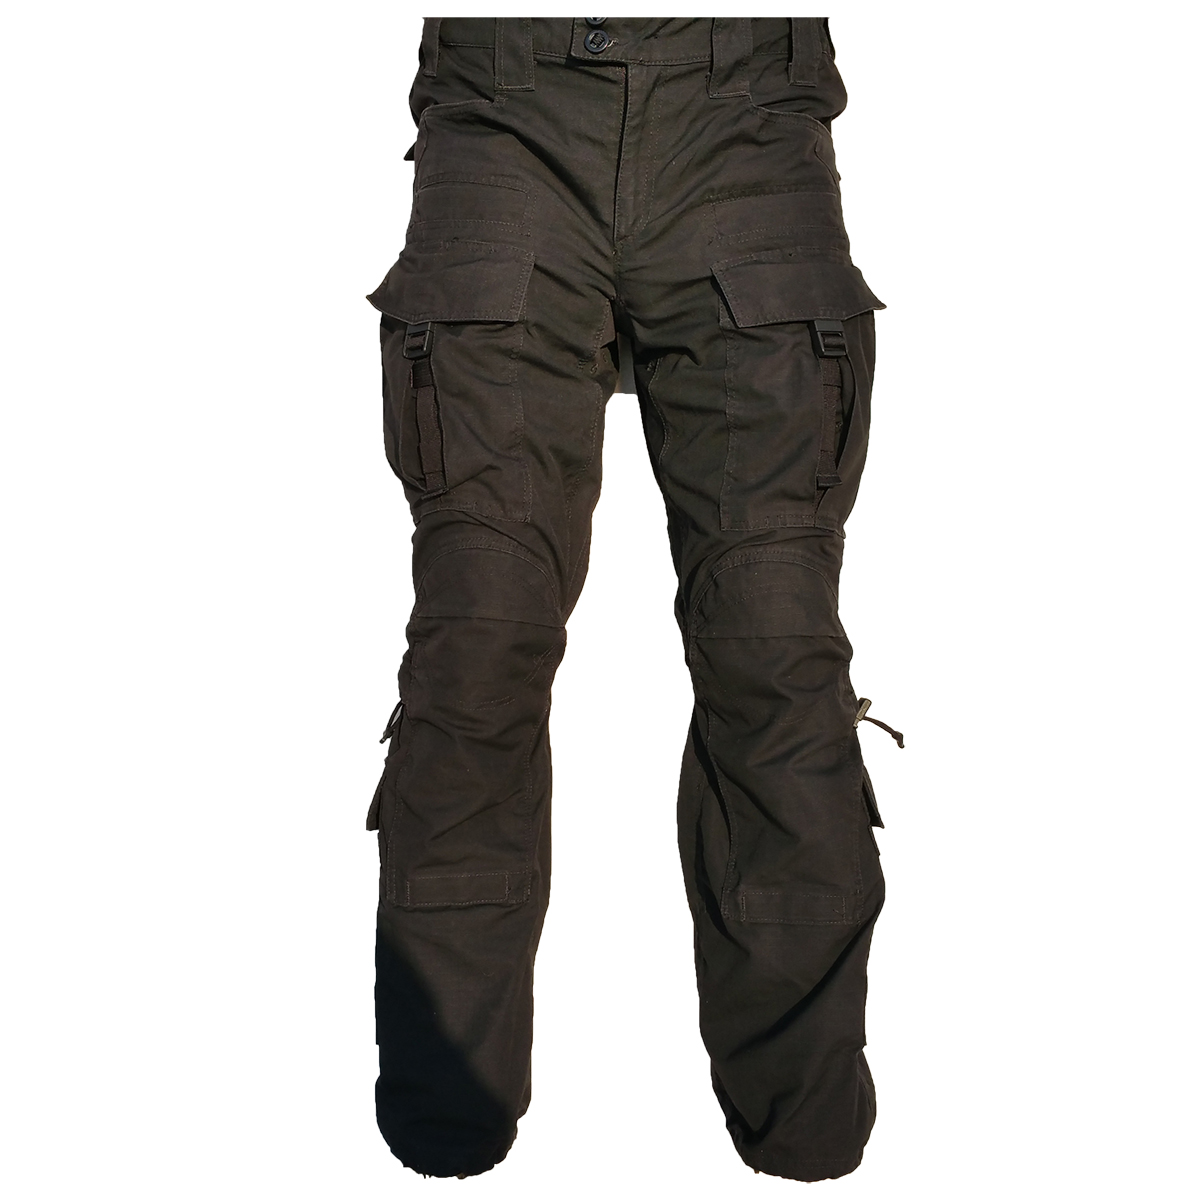 Pantalone Dragon Tactical crne